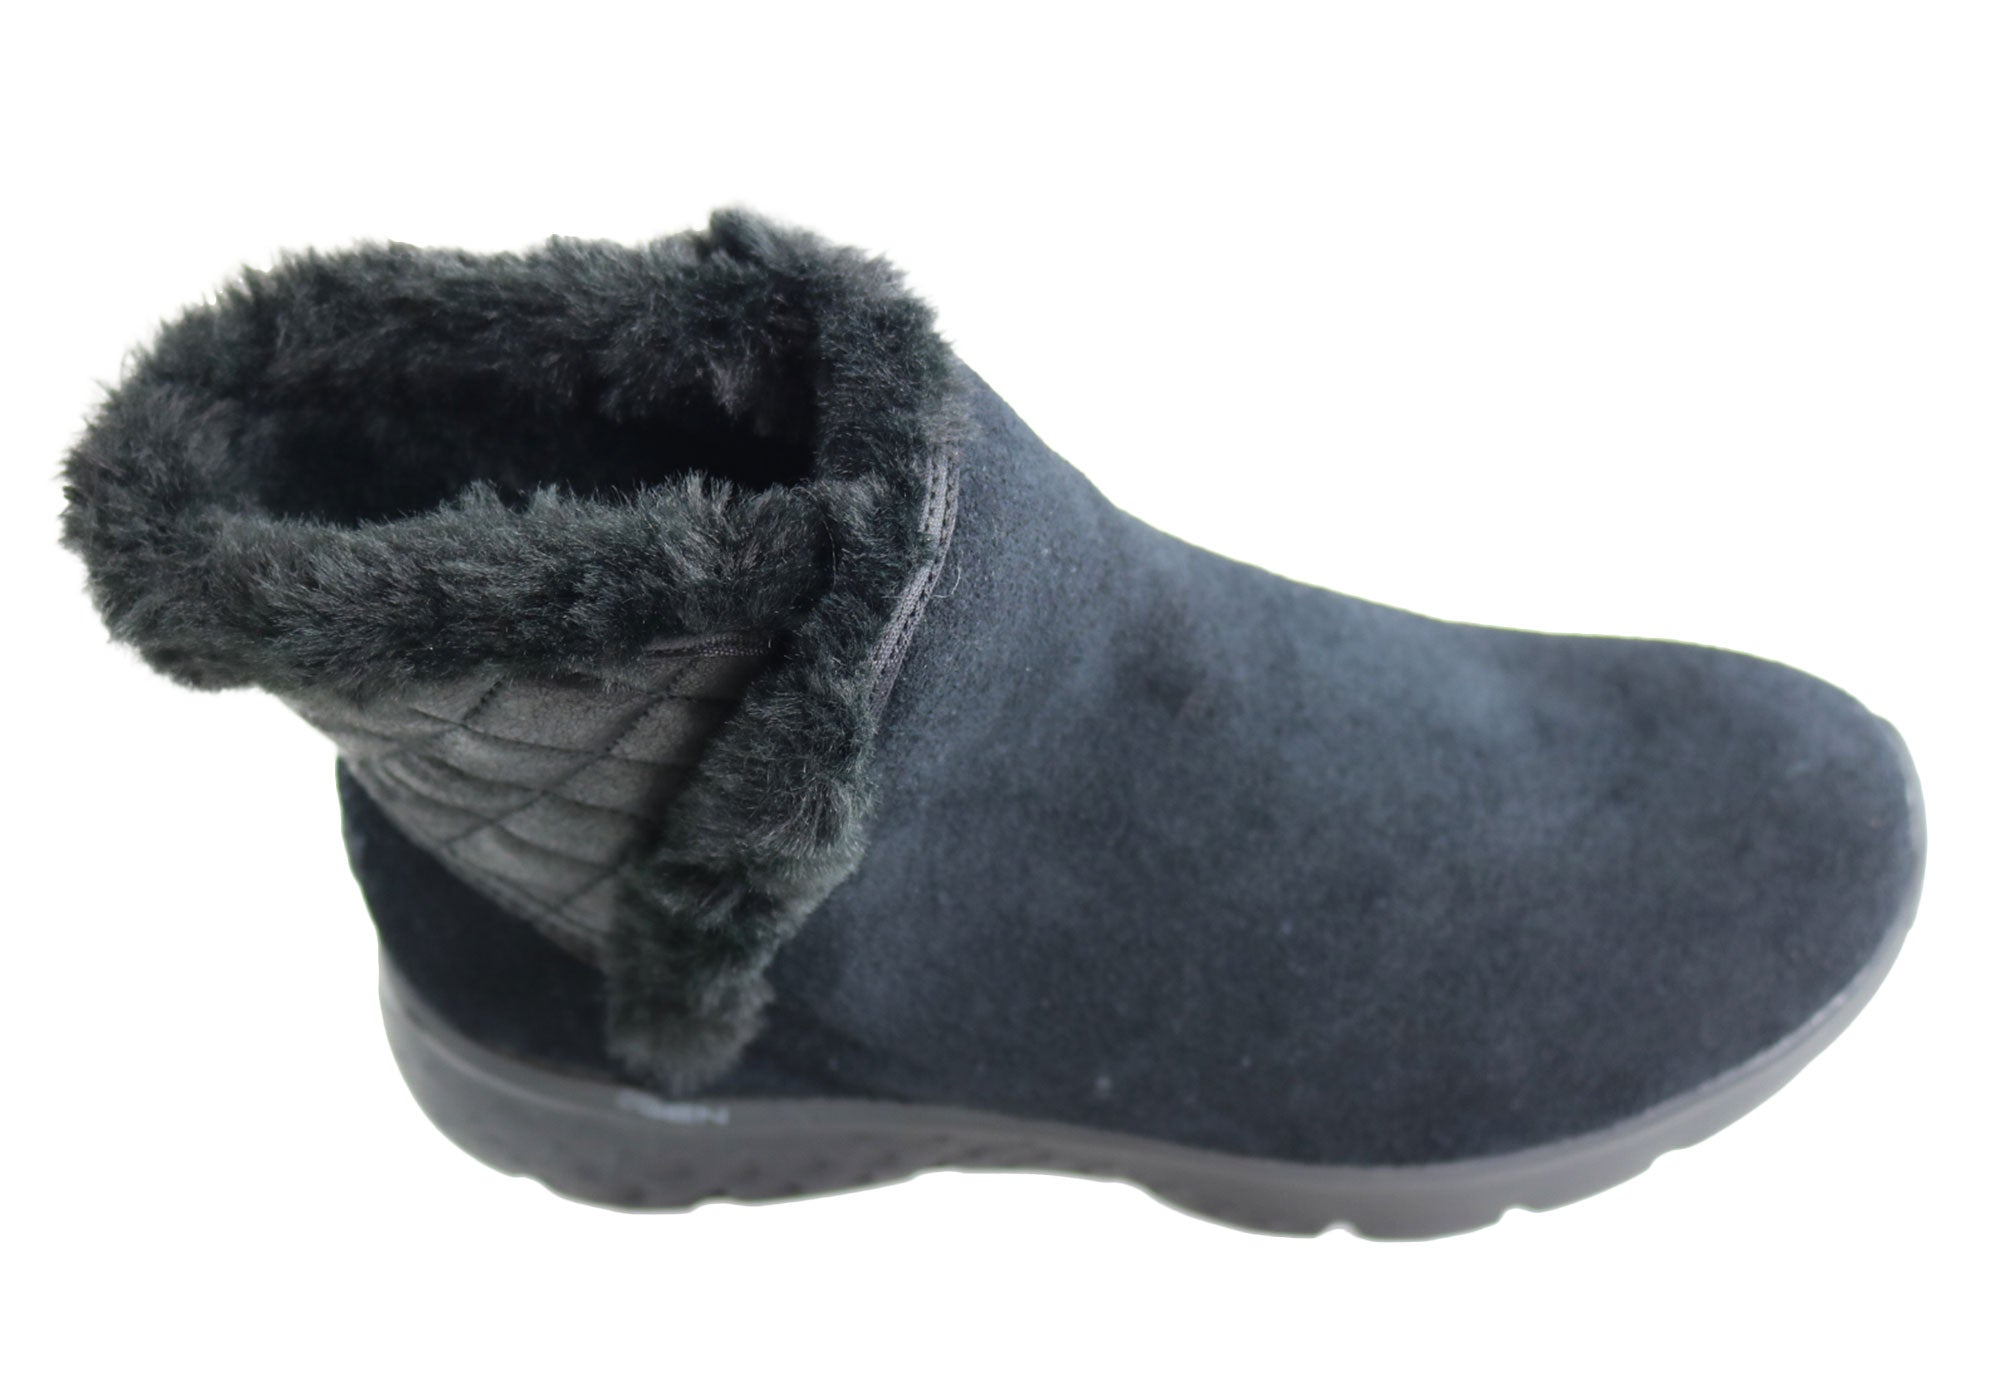 879ff4c9d2 Home Skechers On The Go 400 Cozies Womens Comfortable Boots. Black; Black;  Black; Black; Black; Black ...